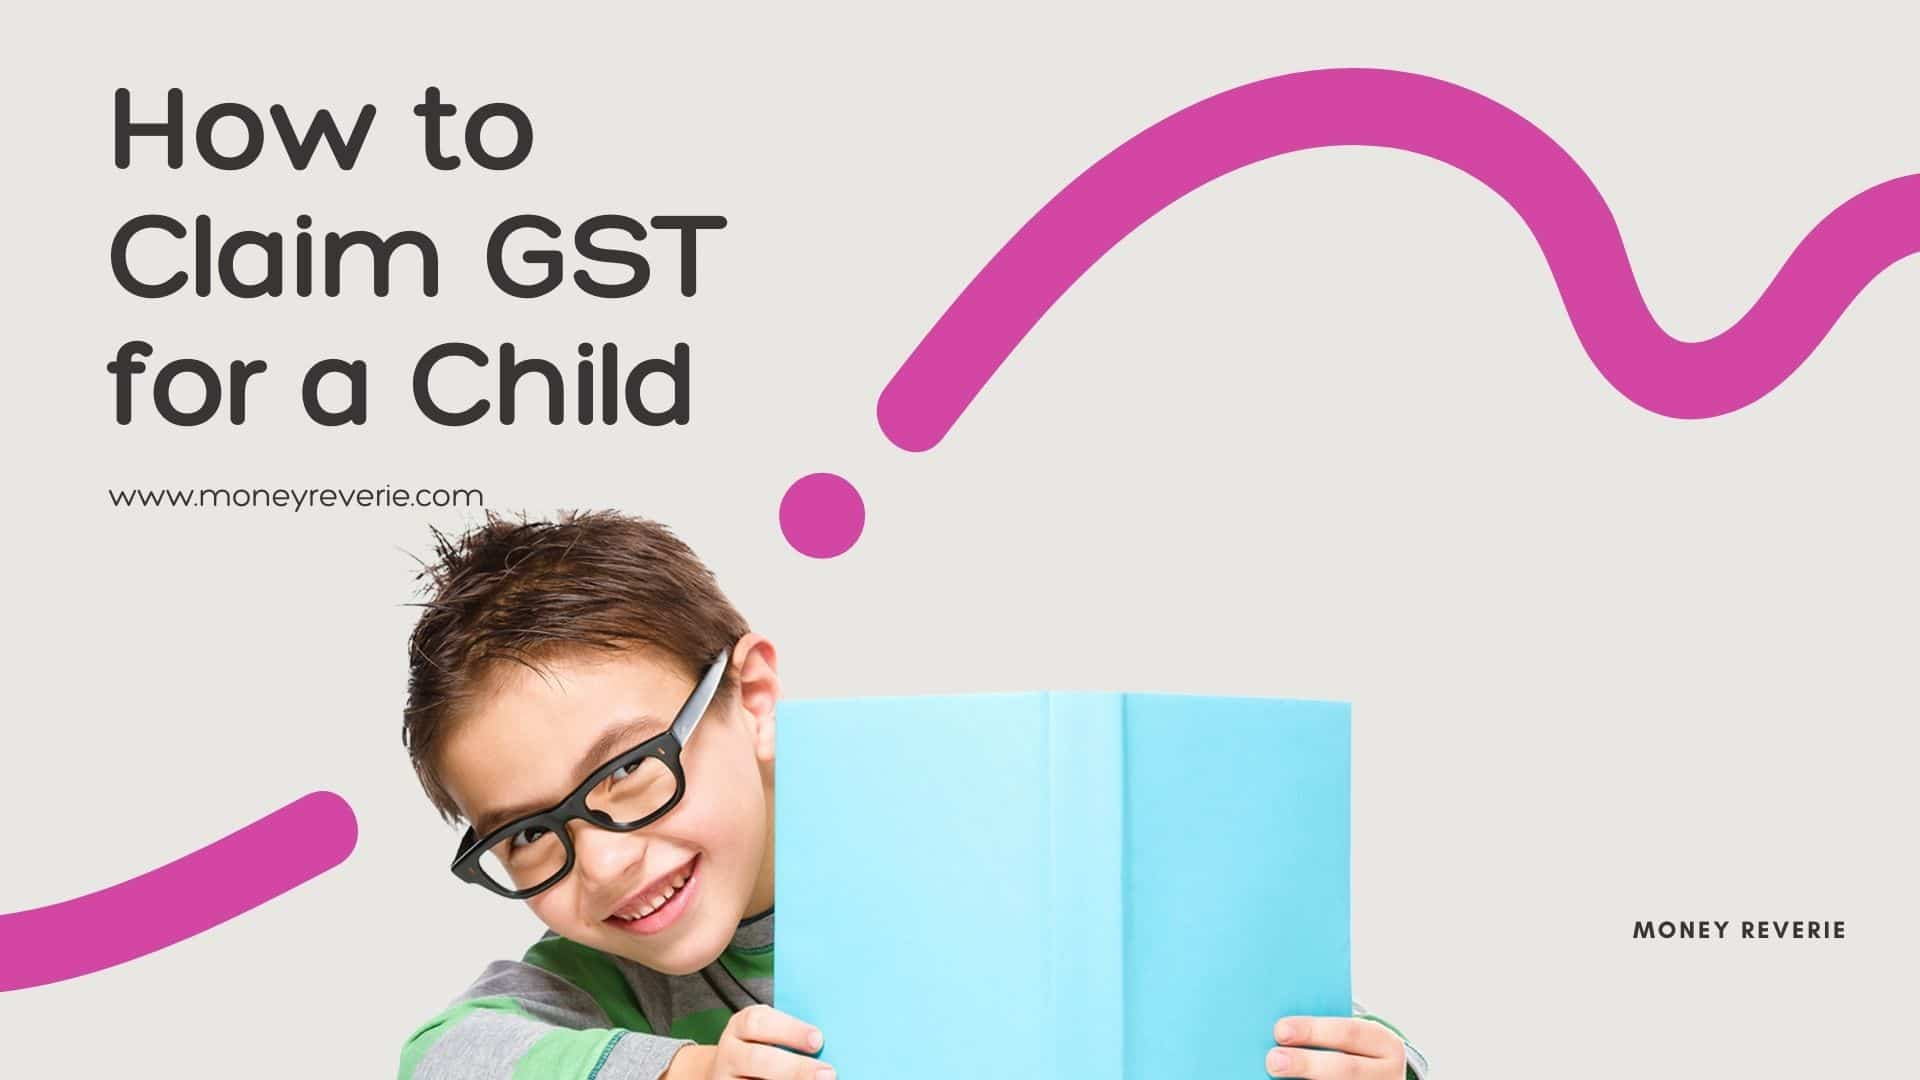 How to claim gst/hst tax credit for a child